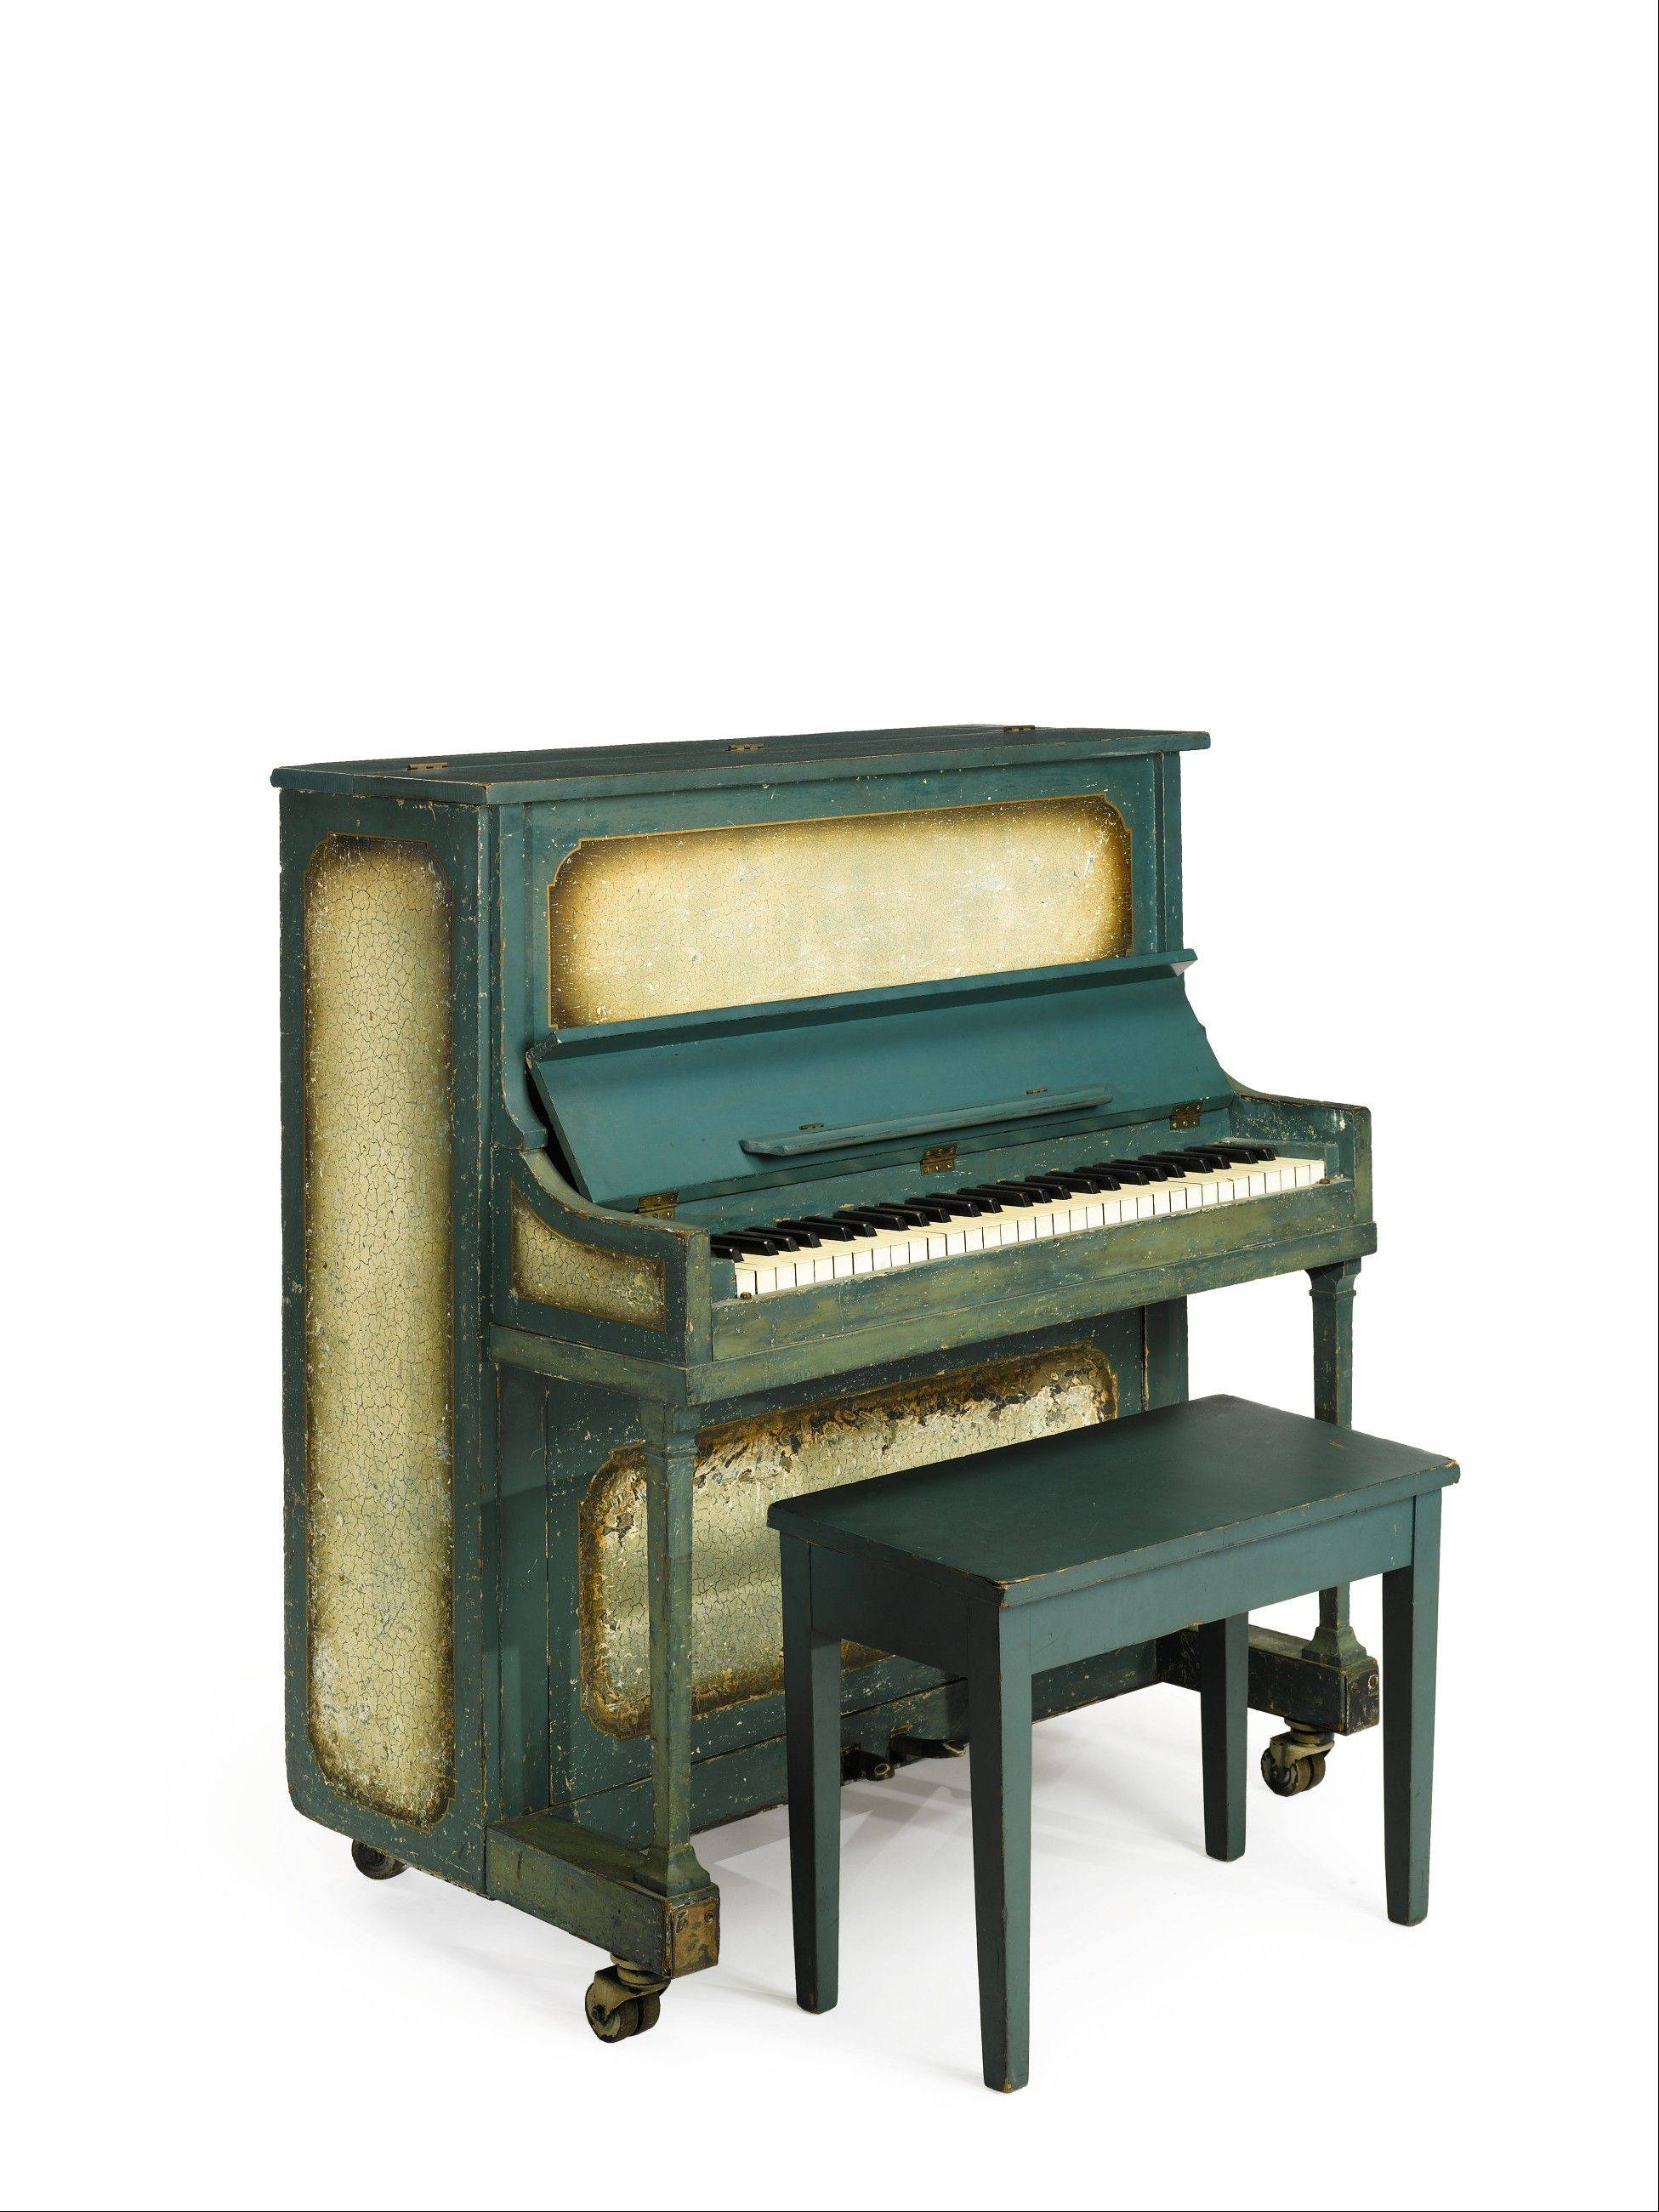 The piano used in the movie �Casablanca� is going up for sale at Sotheby�s in New York on Dec. 14, 2012. The auction house estimates it could fetch up to $1.2 million.